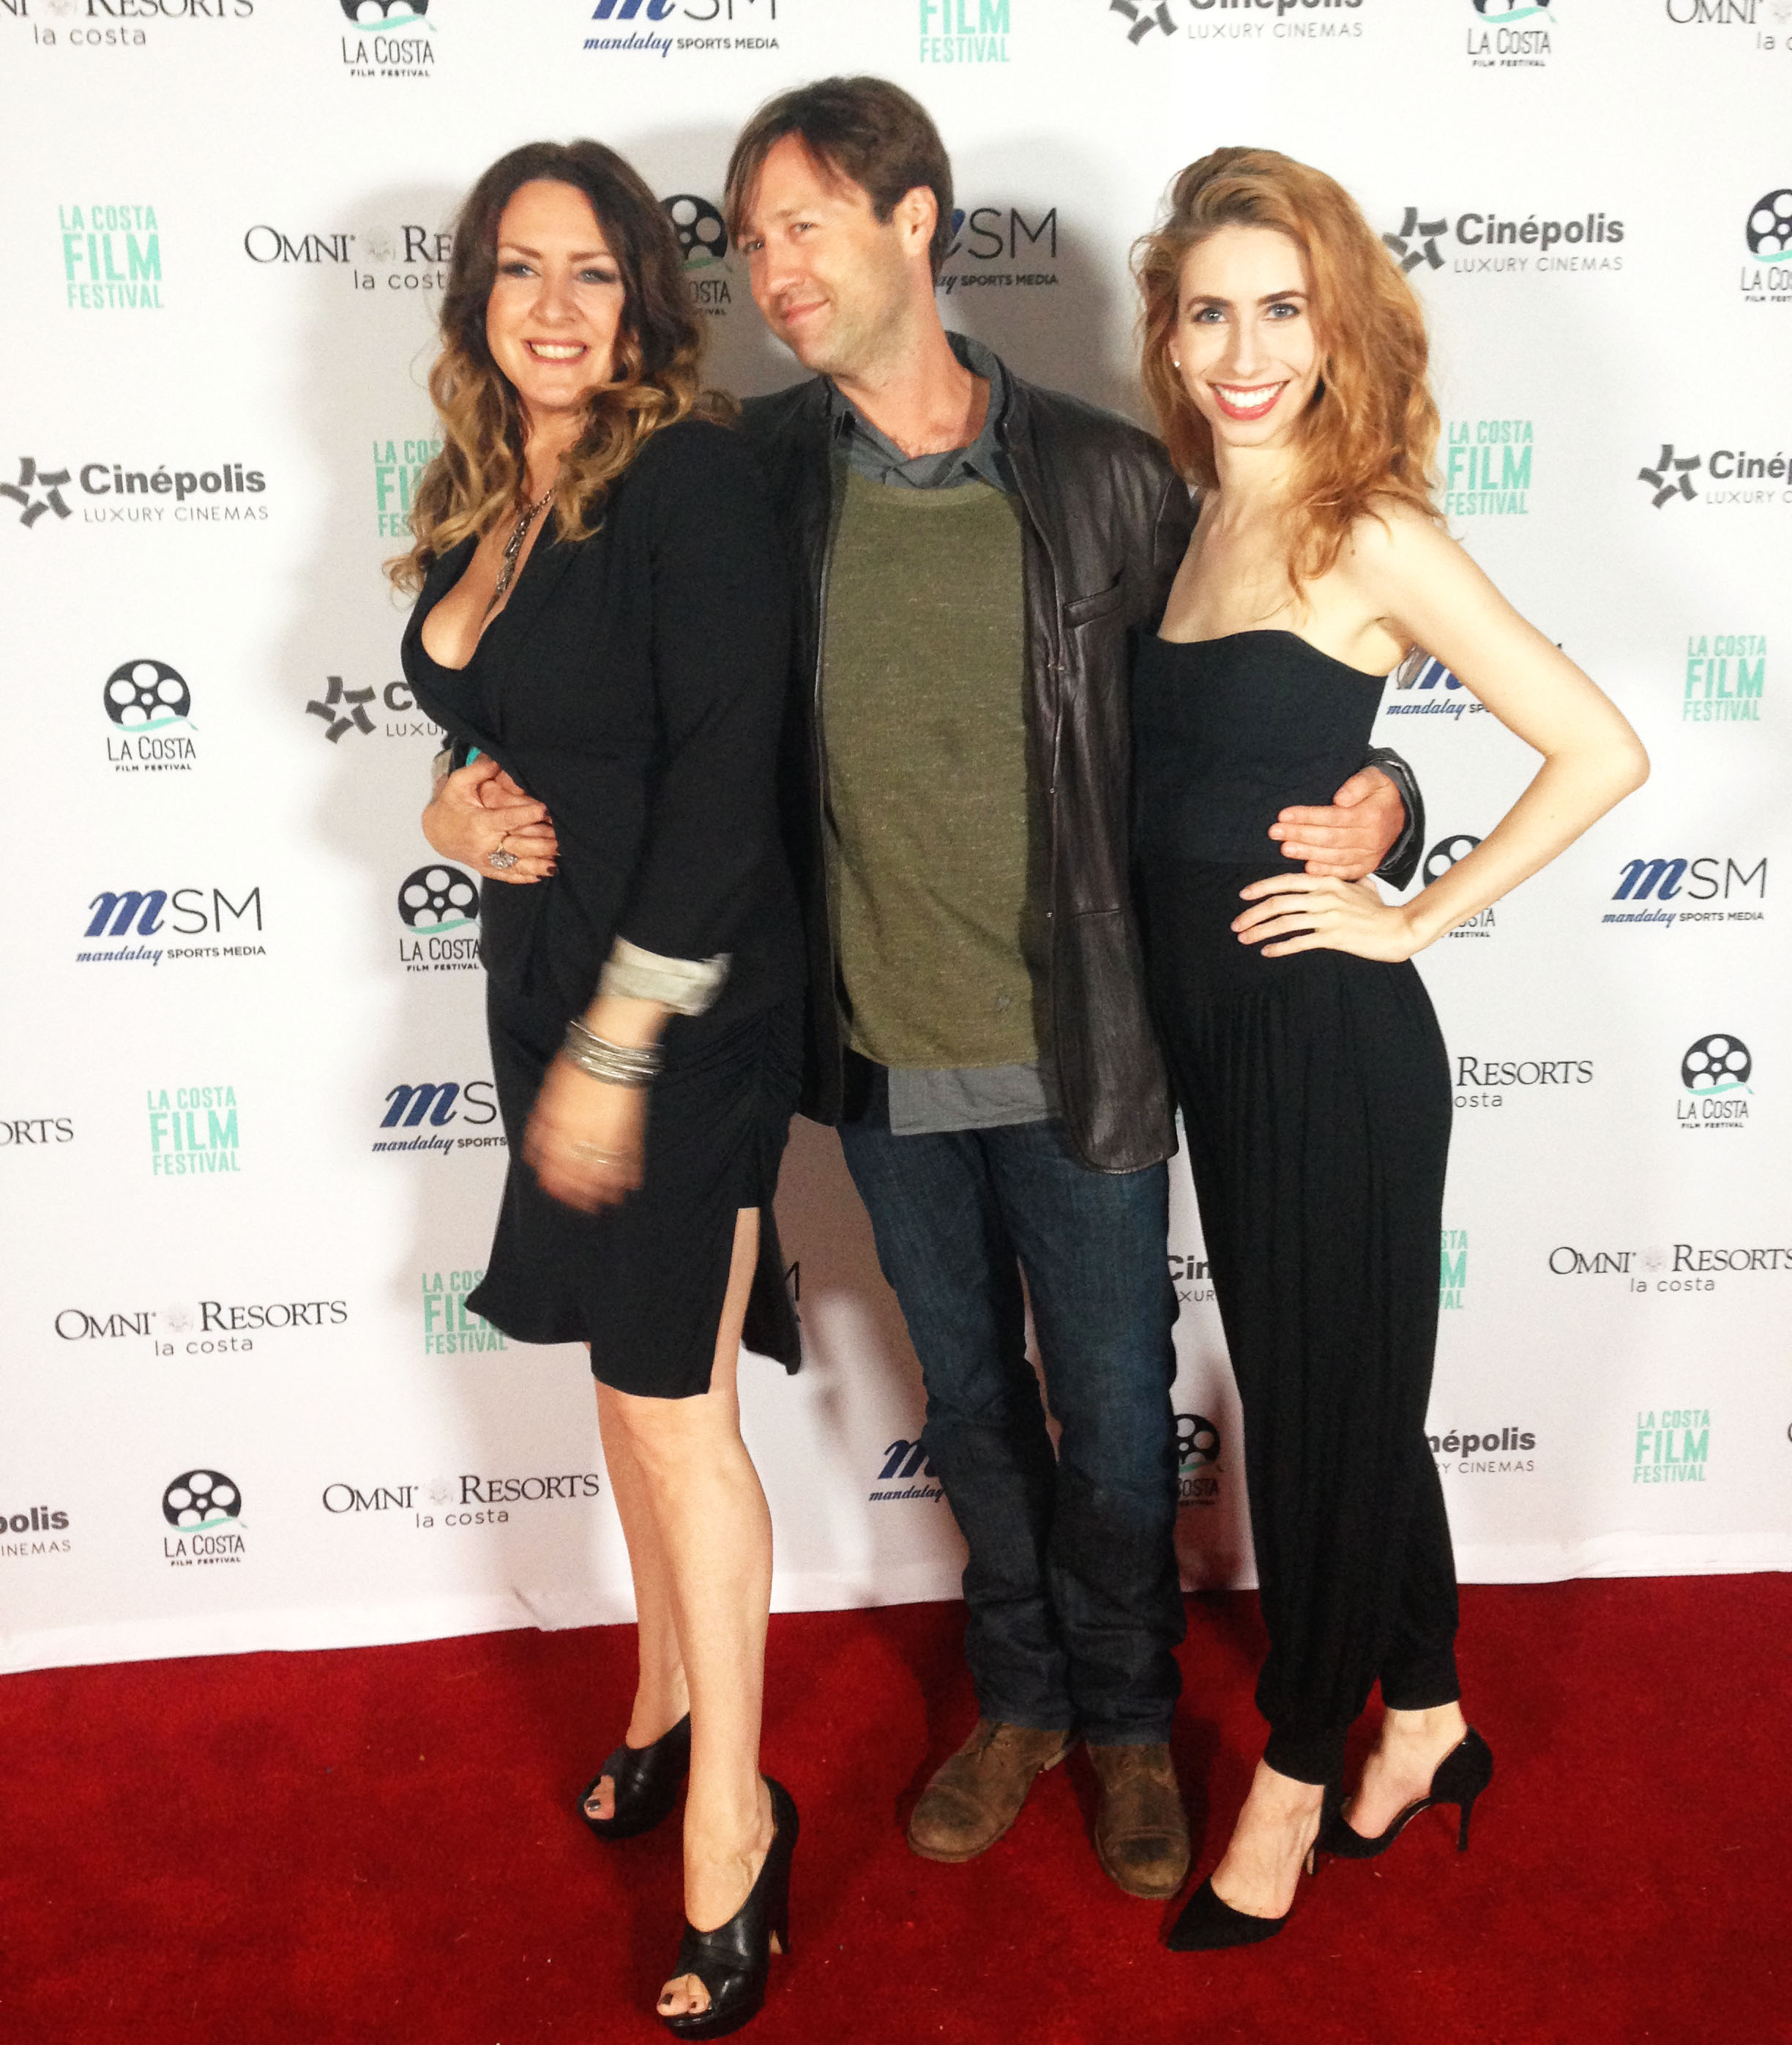 Joely Fisher, Russell Brown and Grace Folsom at the La Costa Film Festival